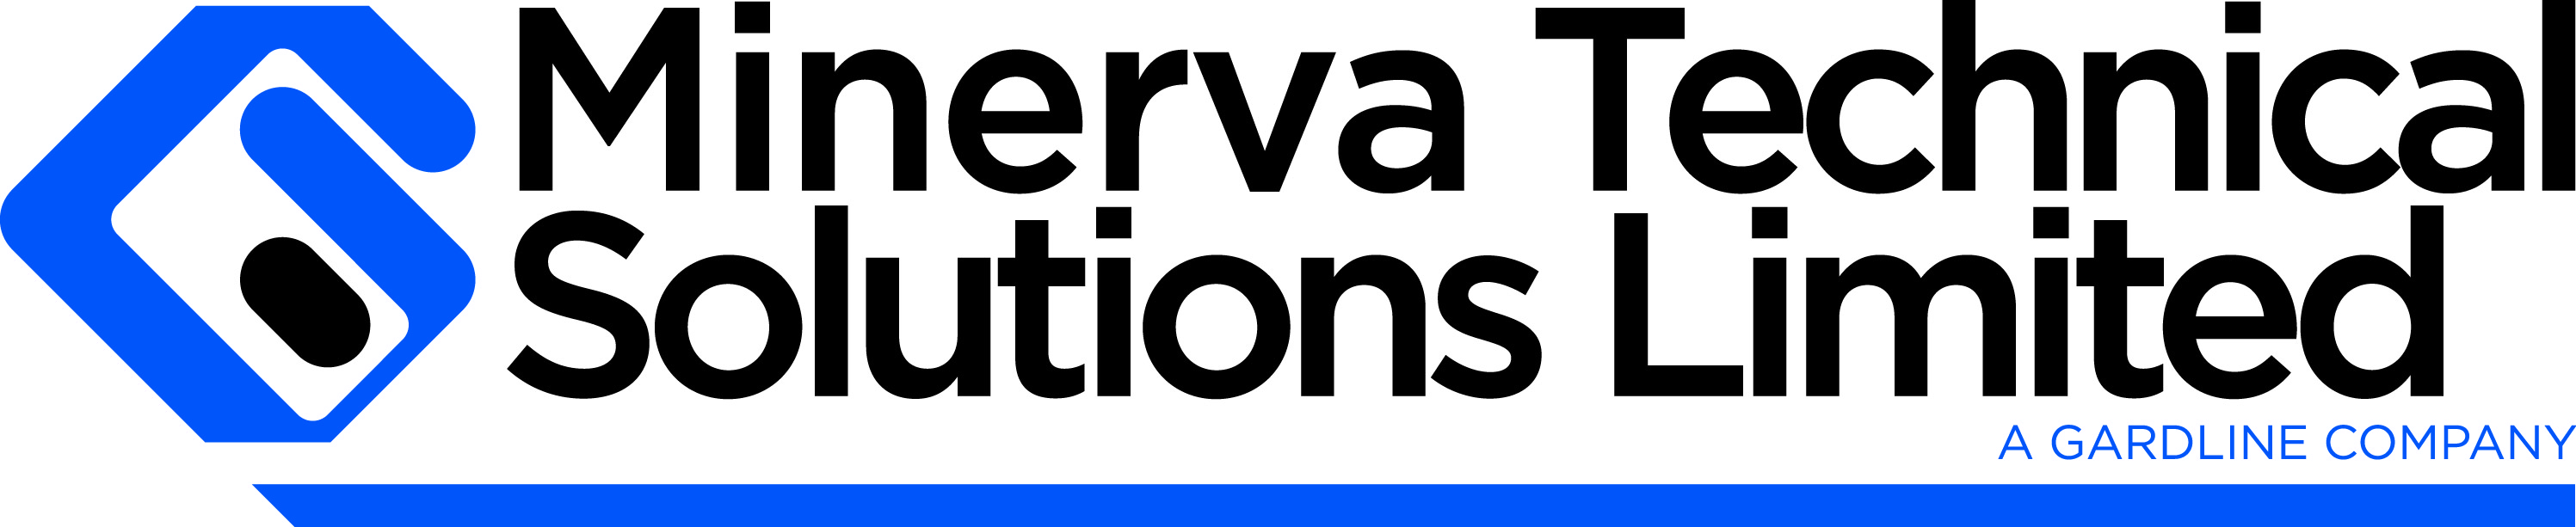 Minerva Technical Solutions Ltd.